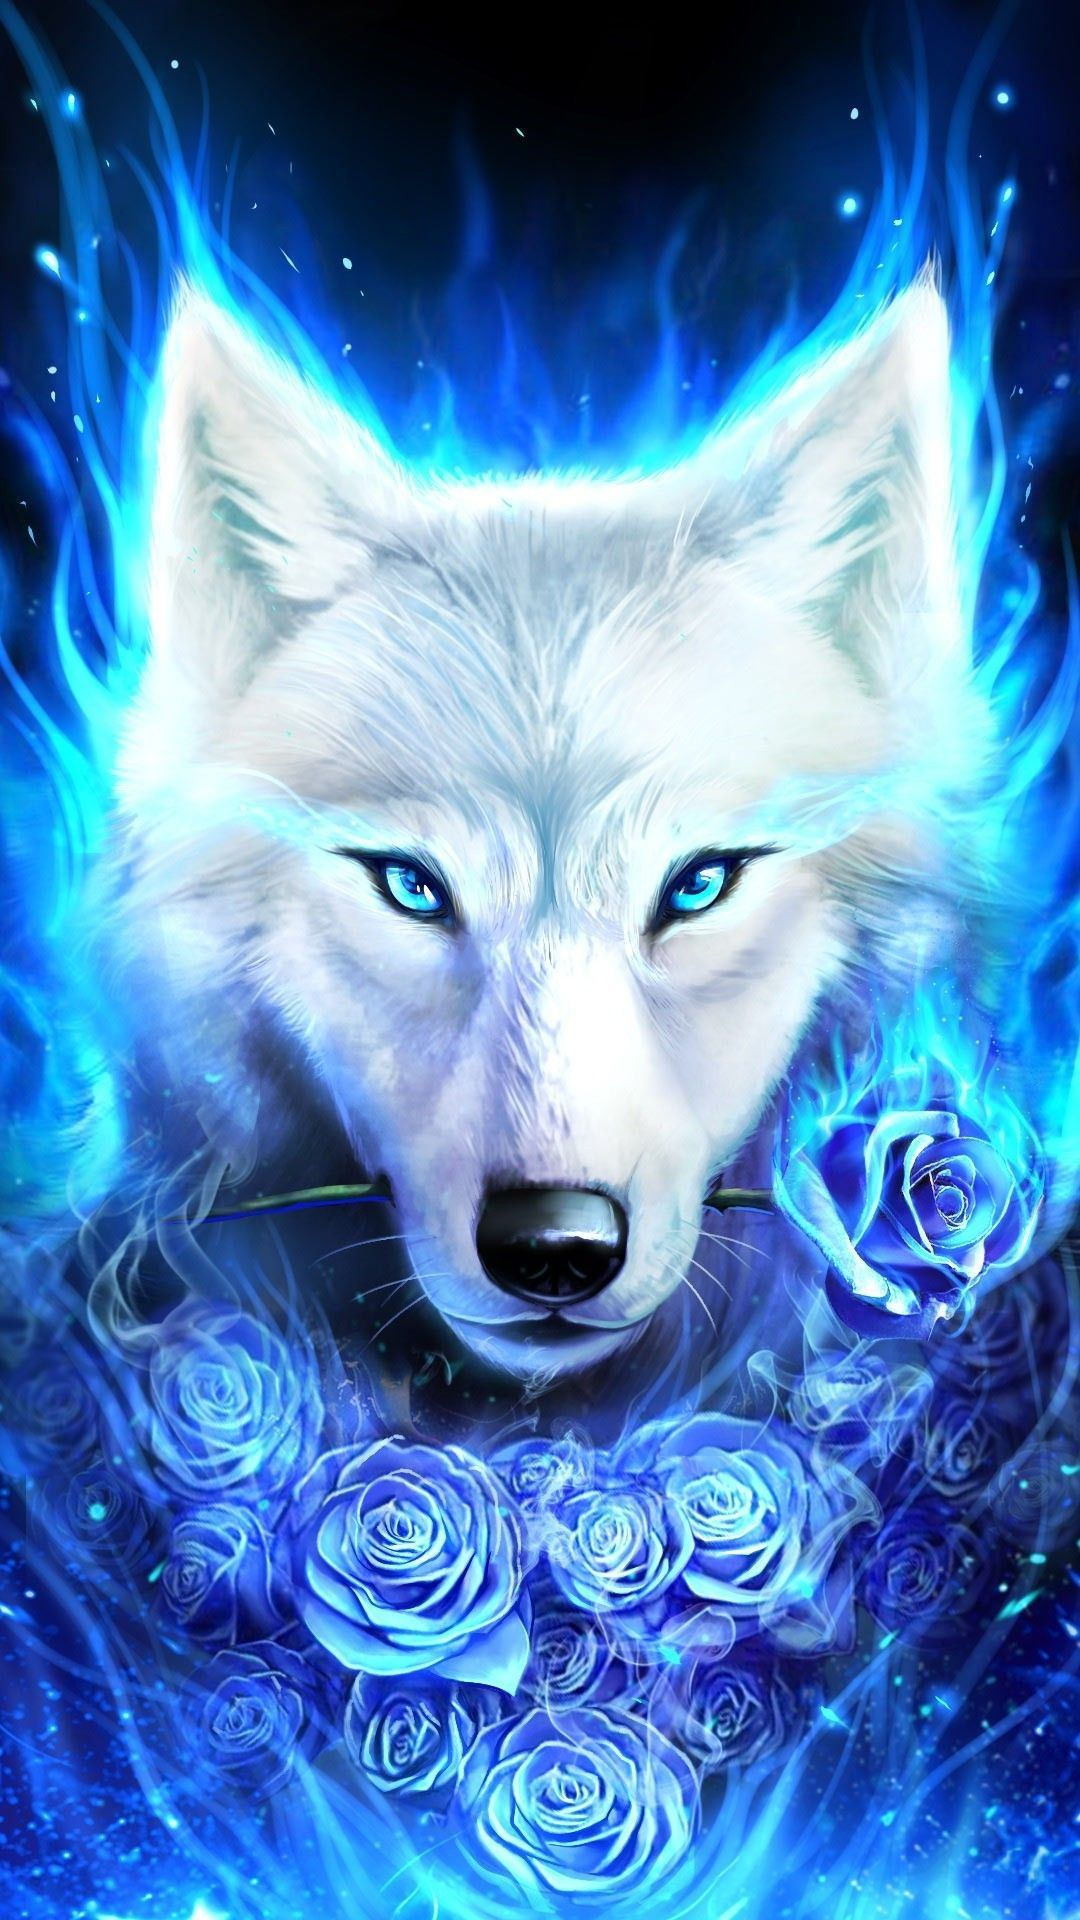 Epic Wolf Wallpapers Background For Iphone Wallpaper On Hupages Com If You Like It Dont Forget Save It Or Repin Wolf Spirit Animal Wolf Wallpaper Fantasy Wolf